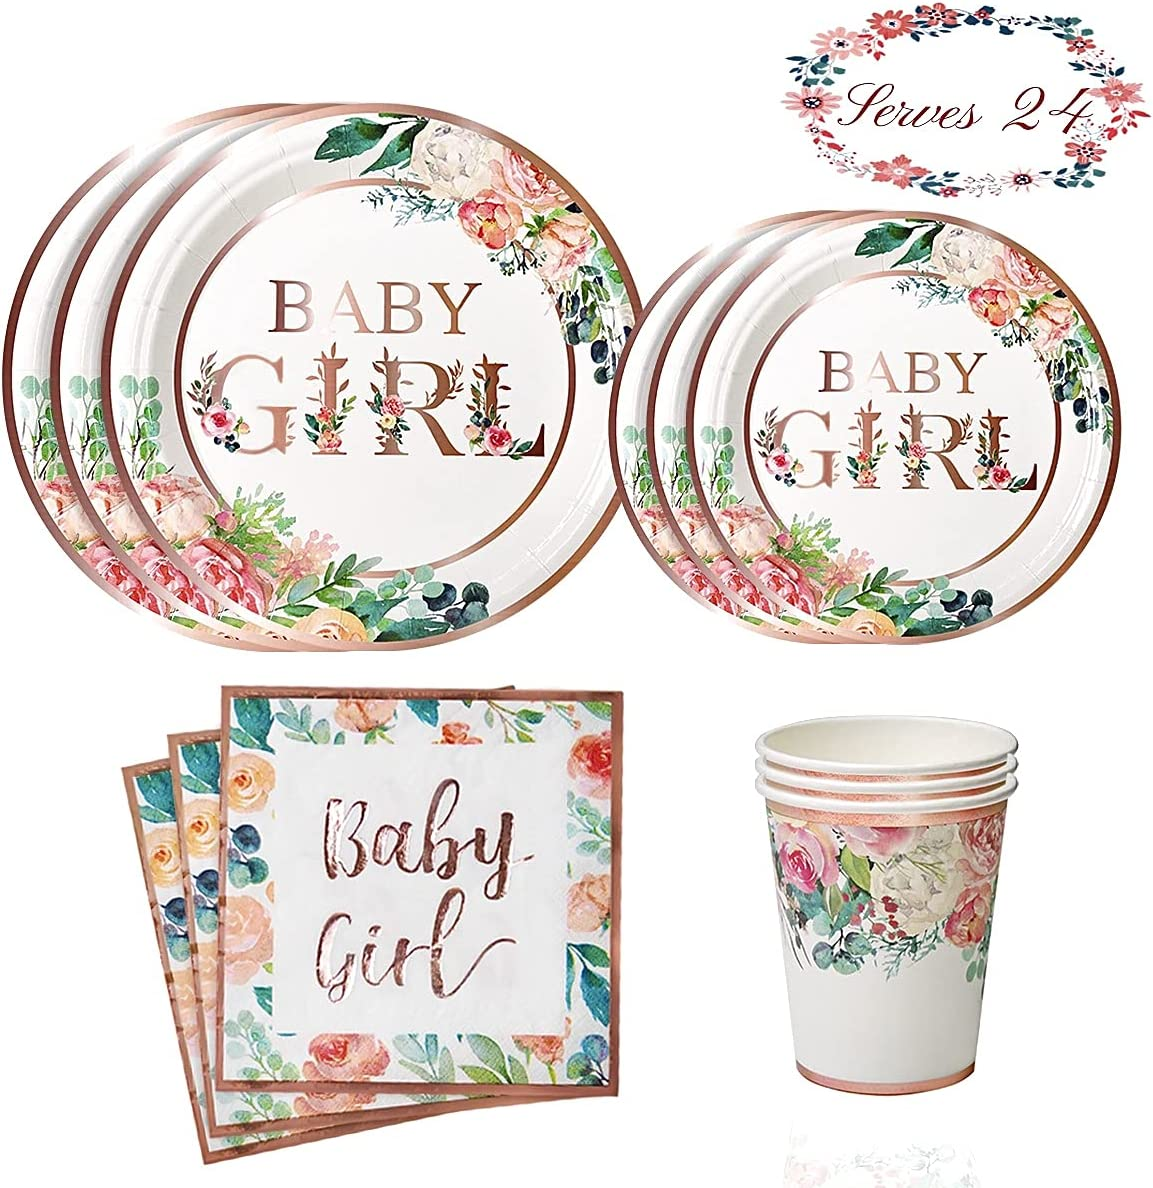 YARA Baby Shower Decorations For Girl Pink & Rose Gold Floral Paper Plates, Napkins & Cups | Boho Party Supplies For Girls Birthday | Disposable Tableware Set For Princess & Tea Theme Serves 24 Guests